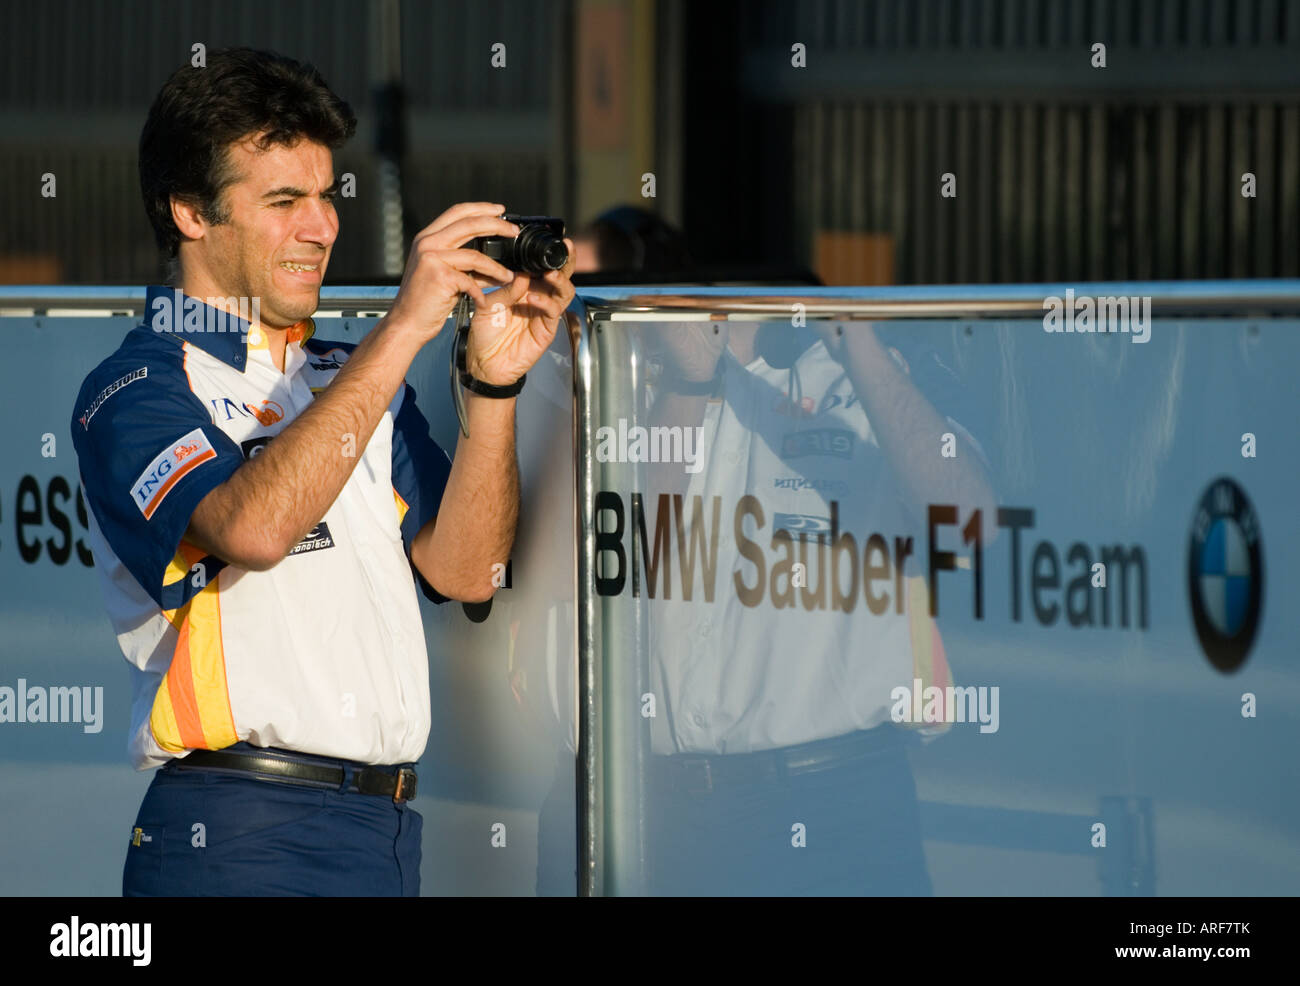 Renault Team member takes pictures of BMW Sauber box during Formula 1 Testing on Circuit Ricardo Tormo, Jan.2008 Stock Photo